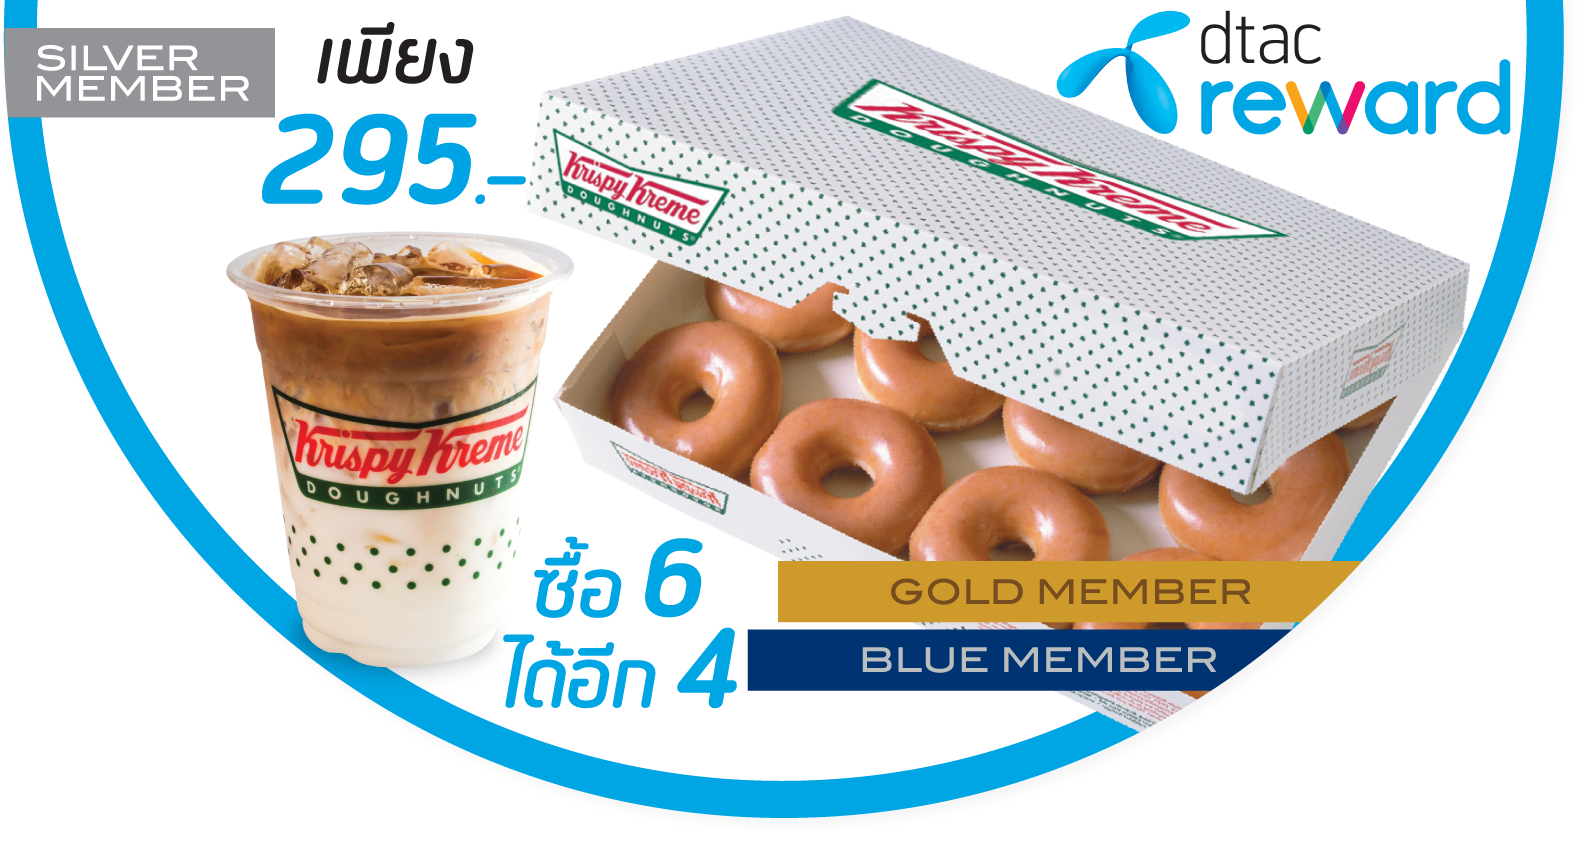 krispykreme_website_Dtac